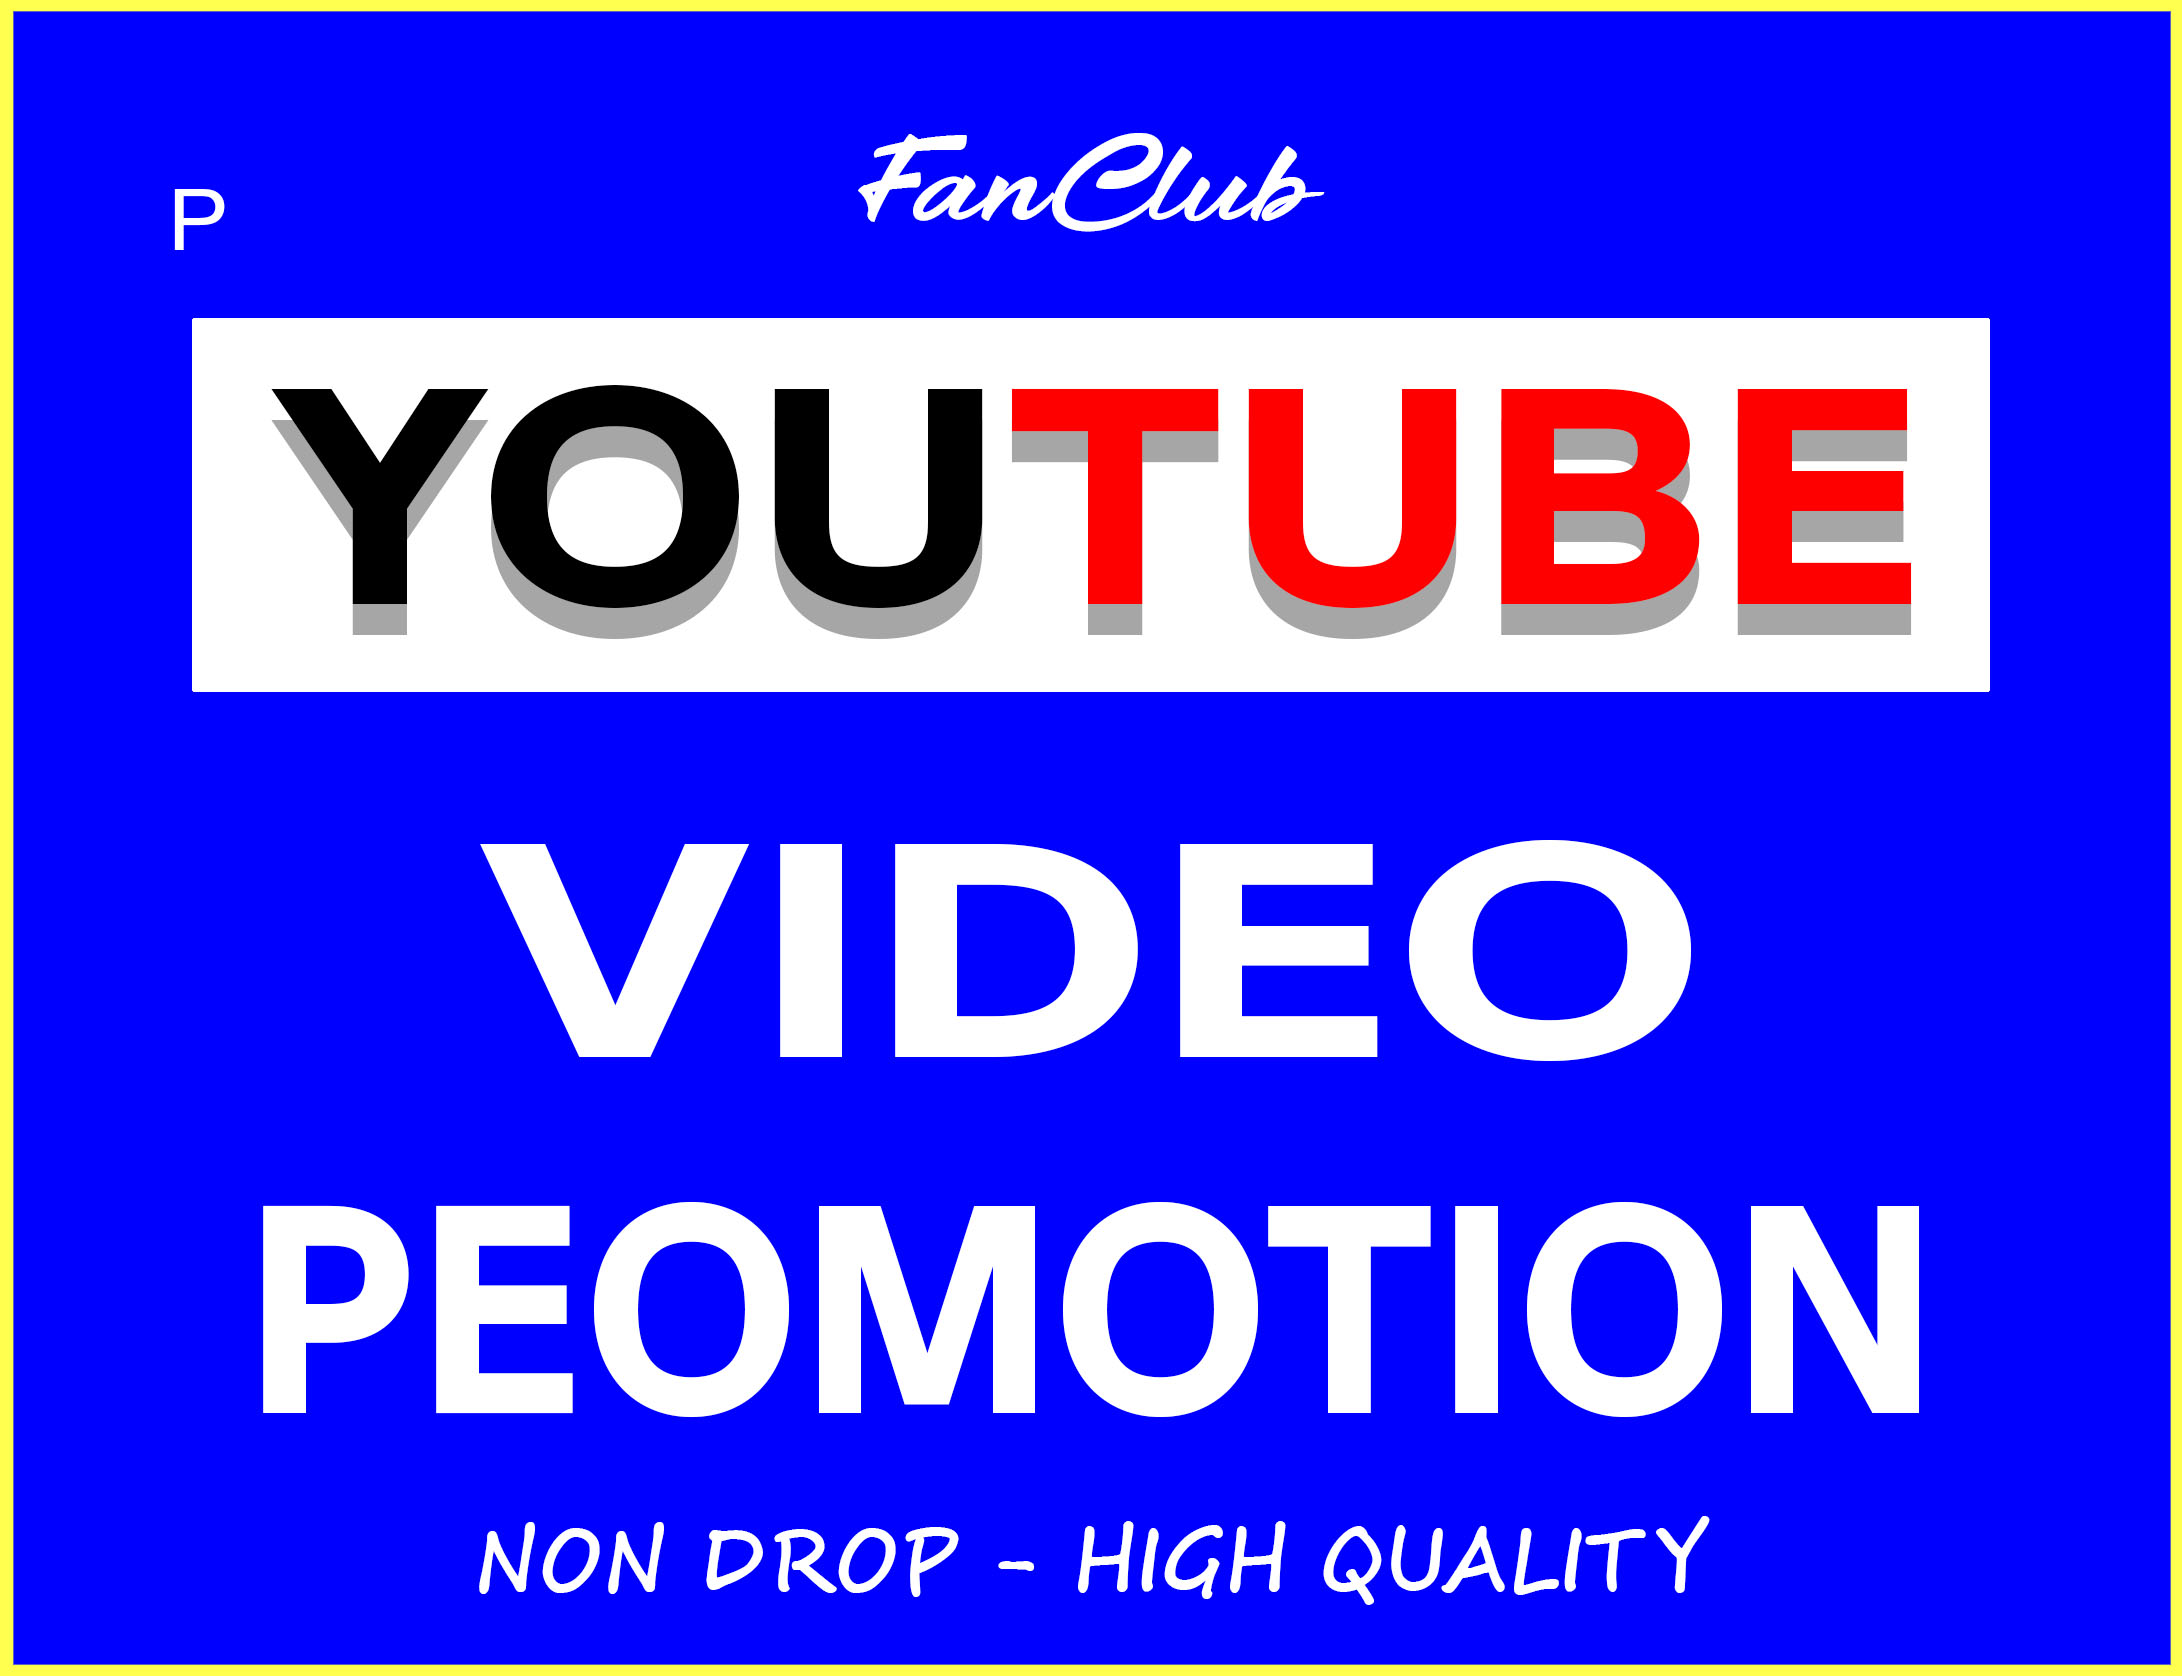 YOUTUBE VIDEO PROMOTION REAL ORGANIC NON DROP GUARANTEED SUPER FAST